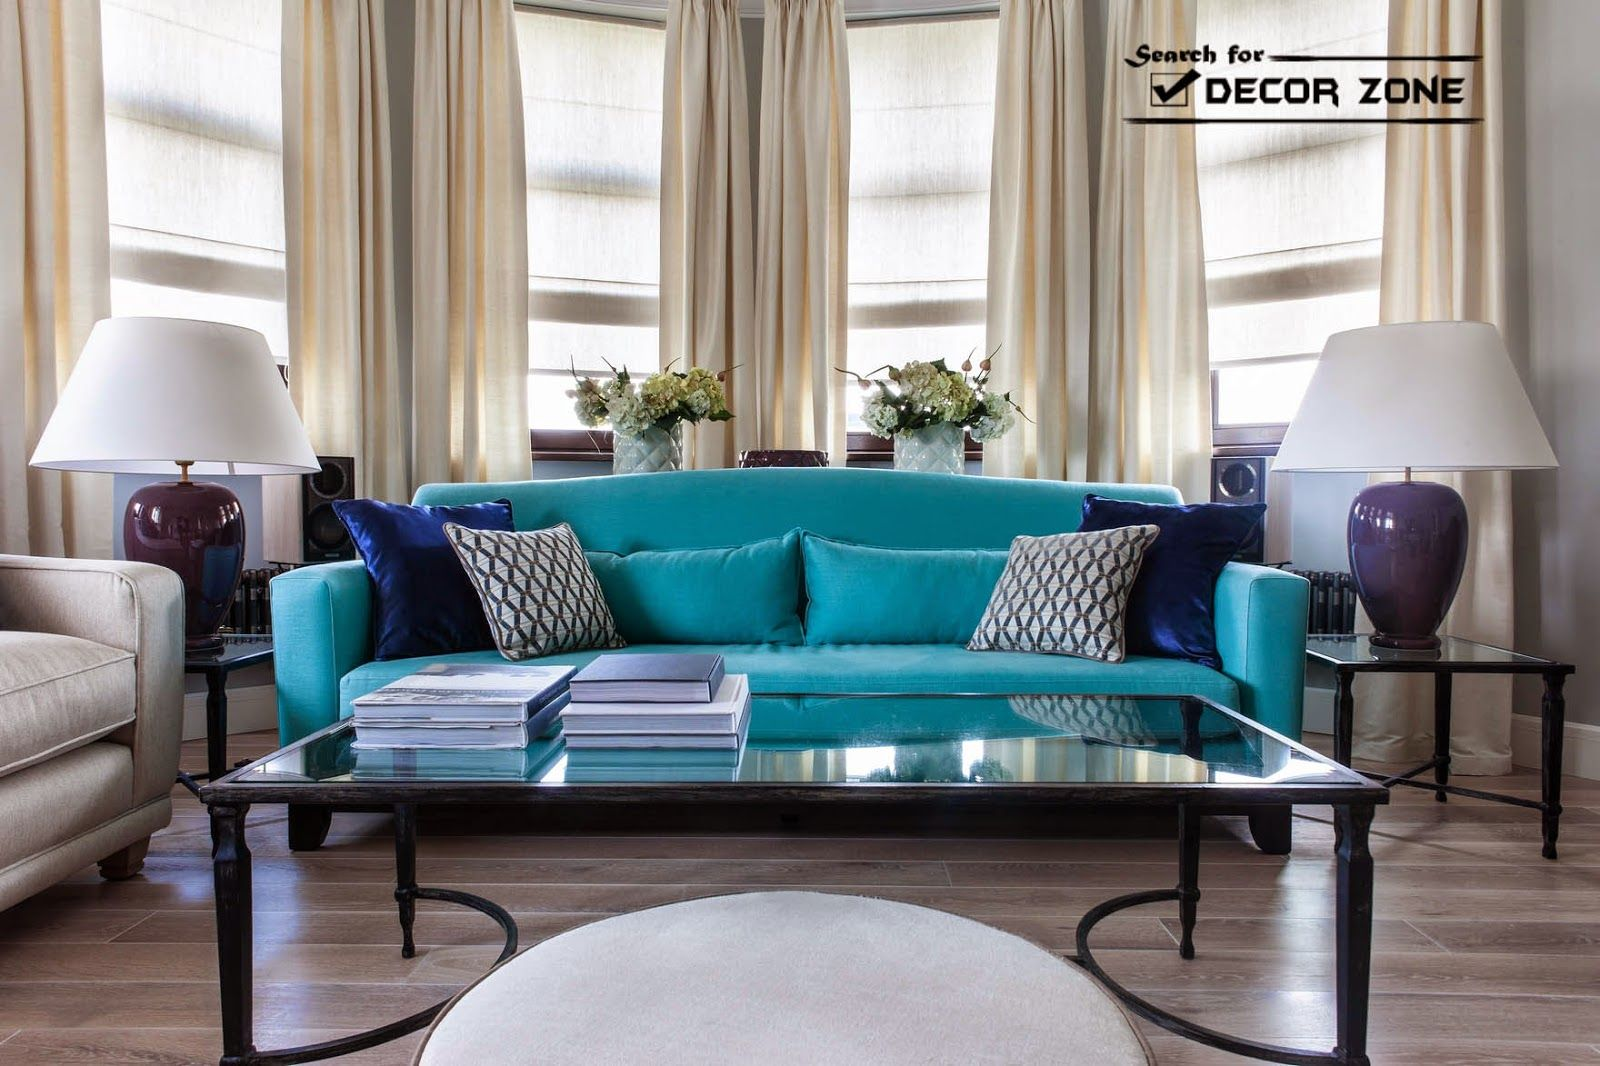 Contemporary Living Room Furniture Turquoise Sofa And White Chairs Living Room Turquoise Blue Living Room Decor Blue Furniture Living Room #turquoise #and #white #living #room